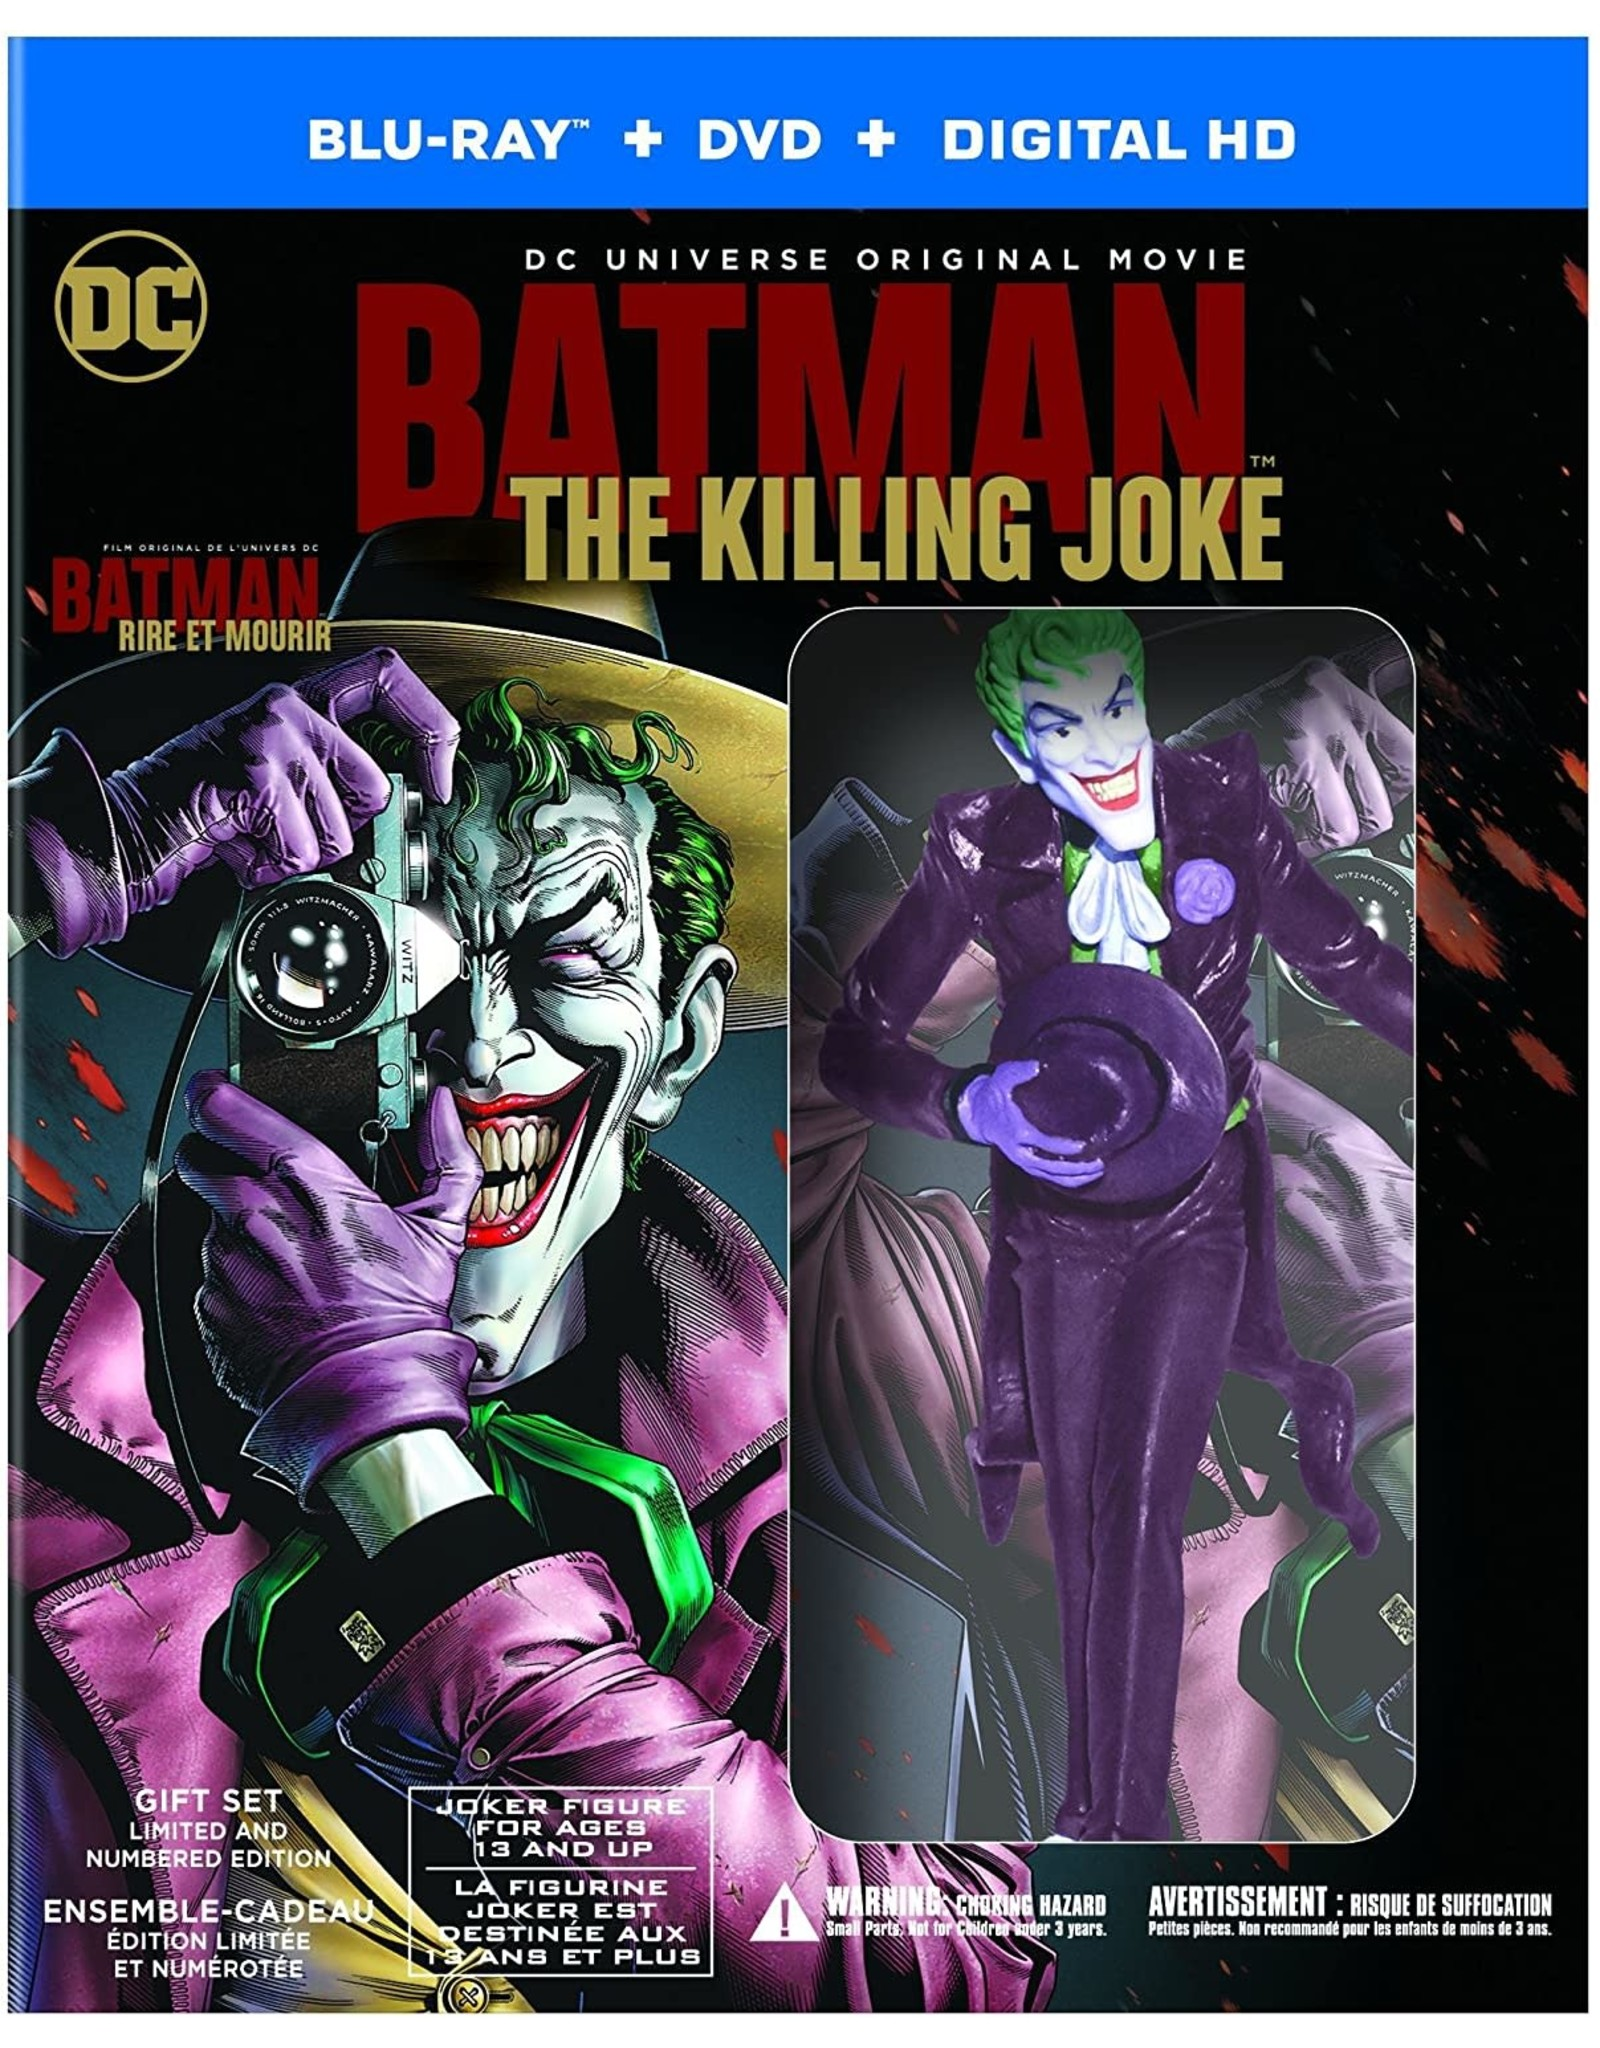 Cult and Cool Batman The Killing Joke Deluxe Edition w/ Figurine